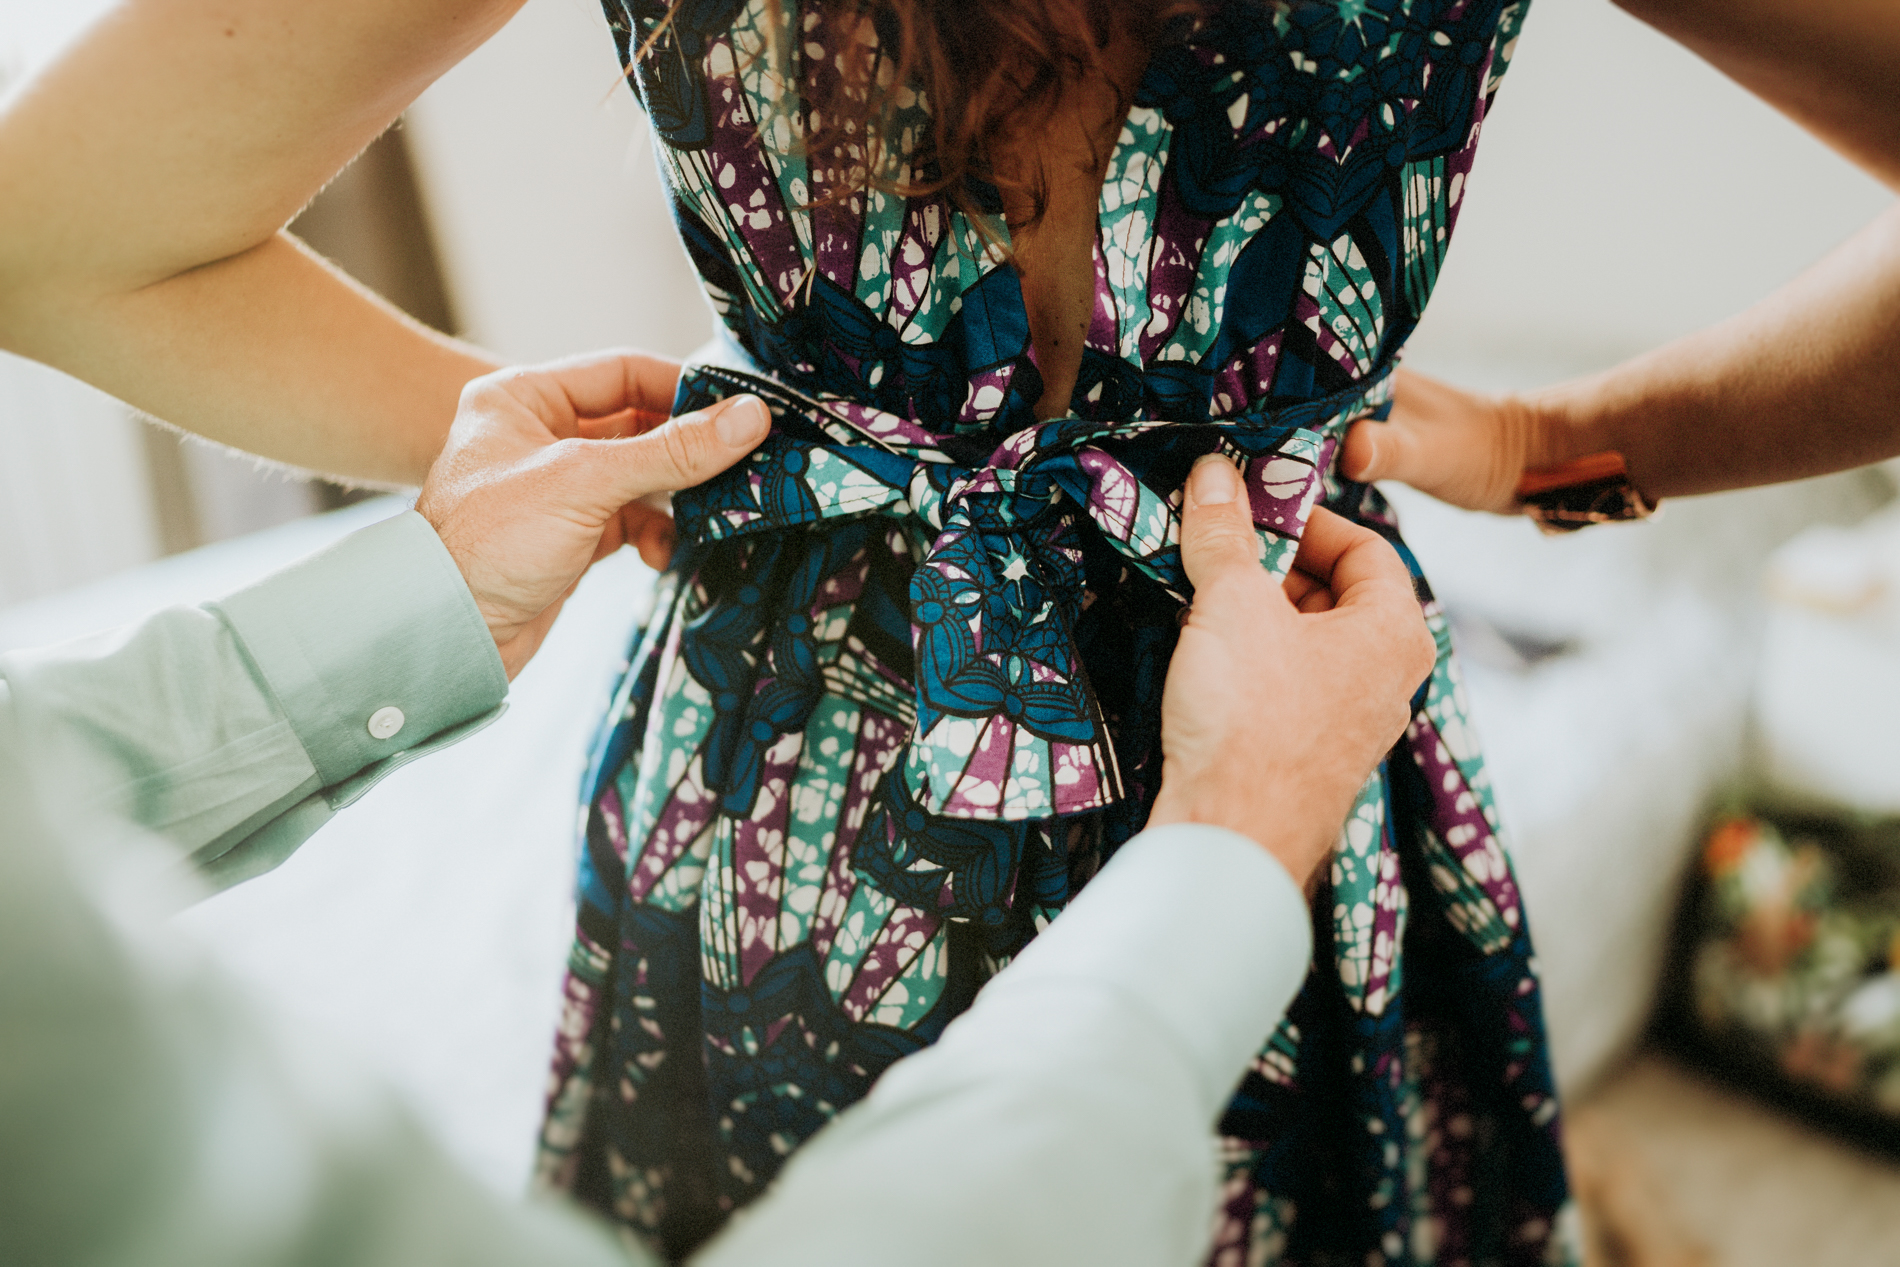 Wedding Photography for Lyon, FR | The groom helps his future wife tie a bow at the back of her dress